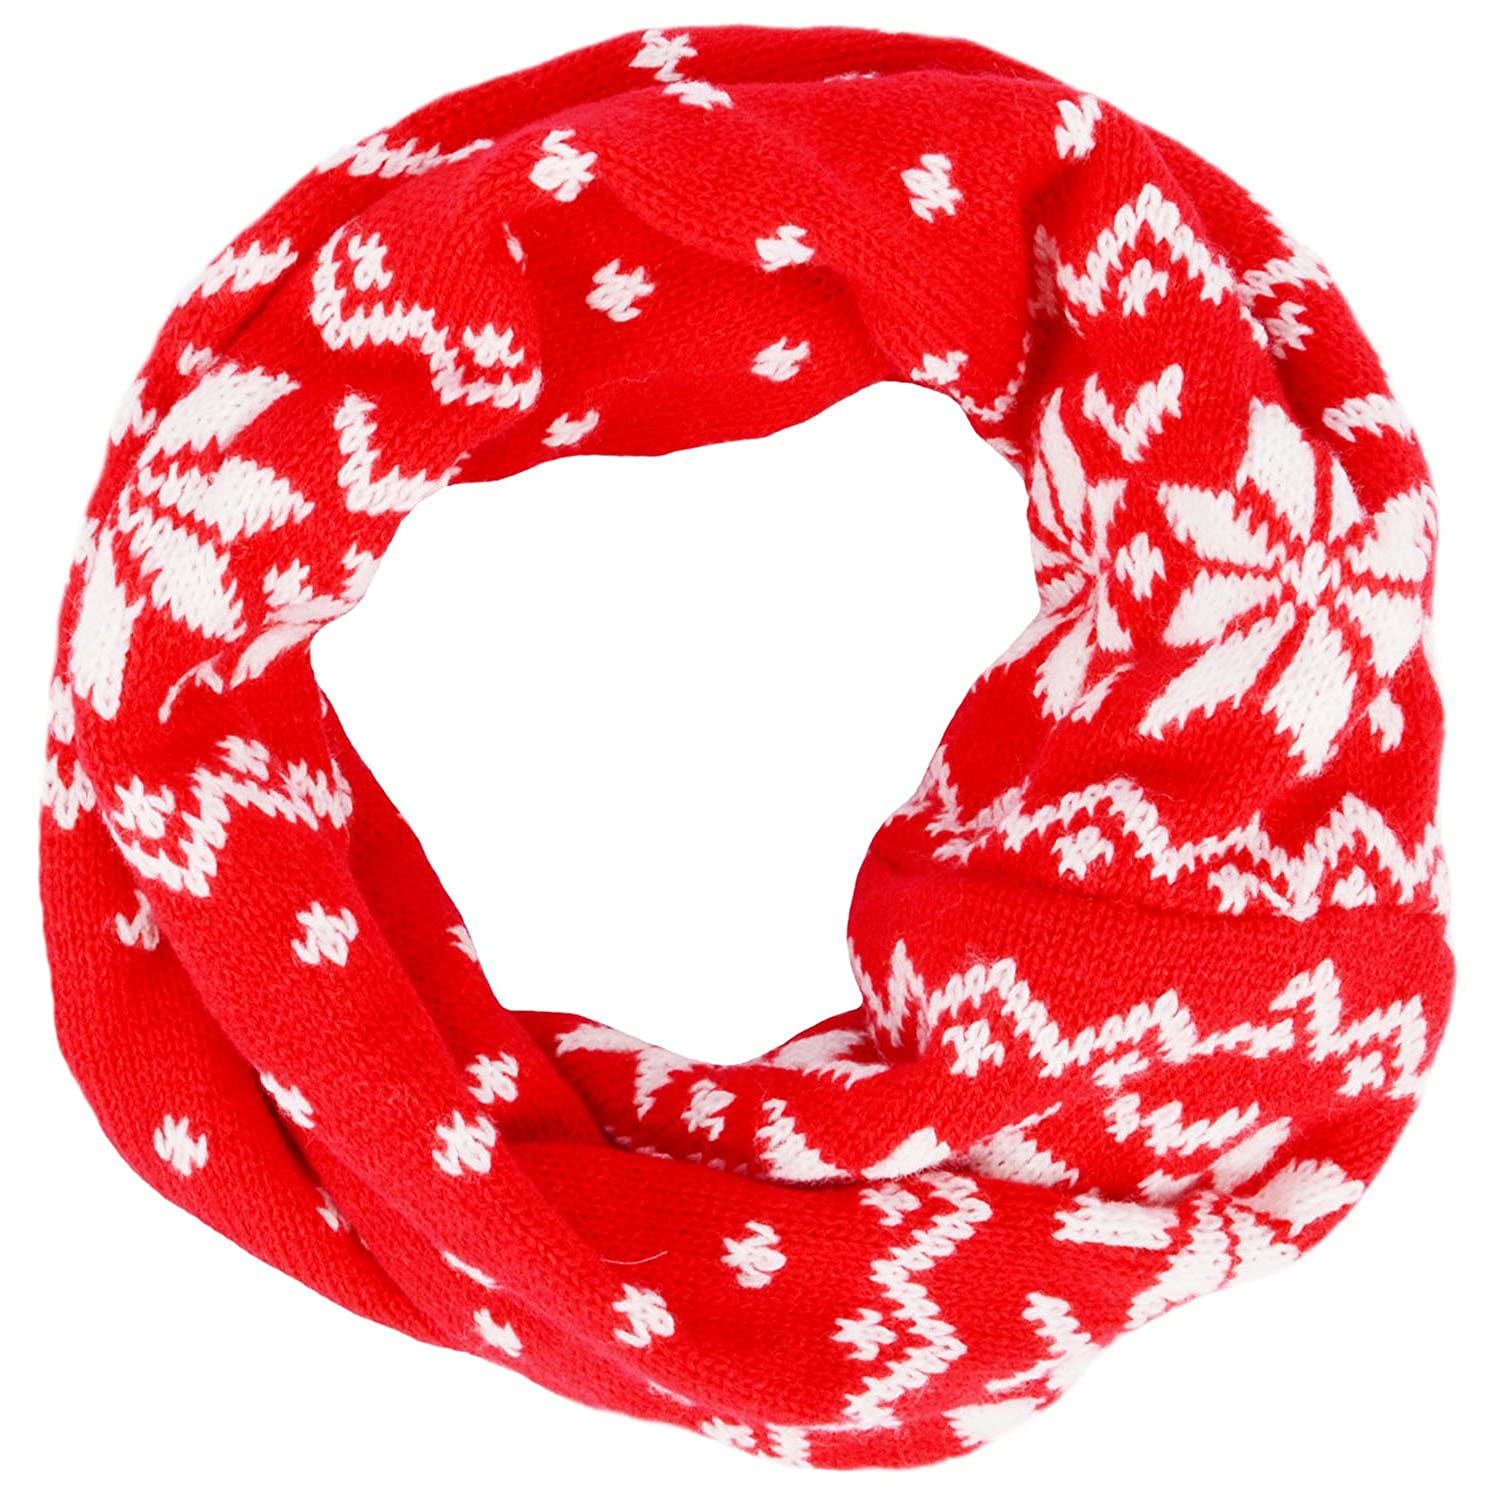 Childrens Winter Beautiful Snowflake Patterned Soft Knit Infinity Scarf